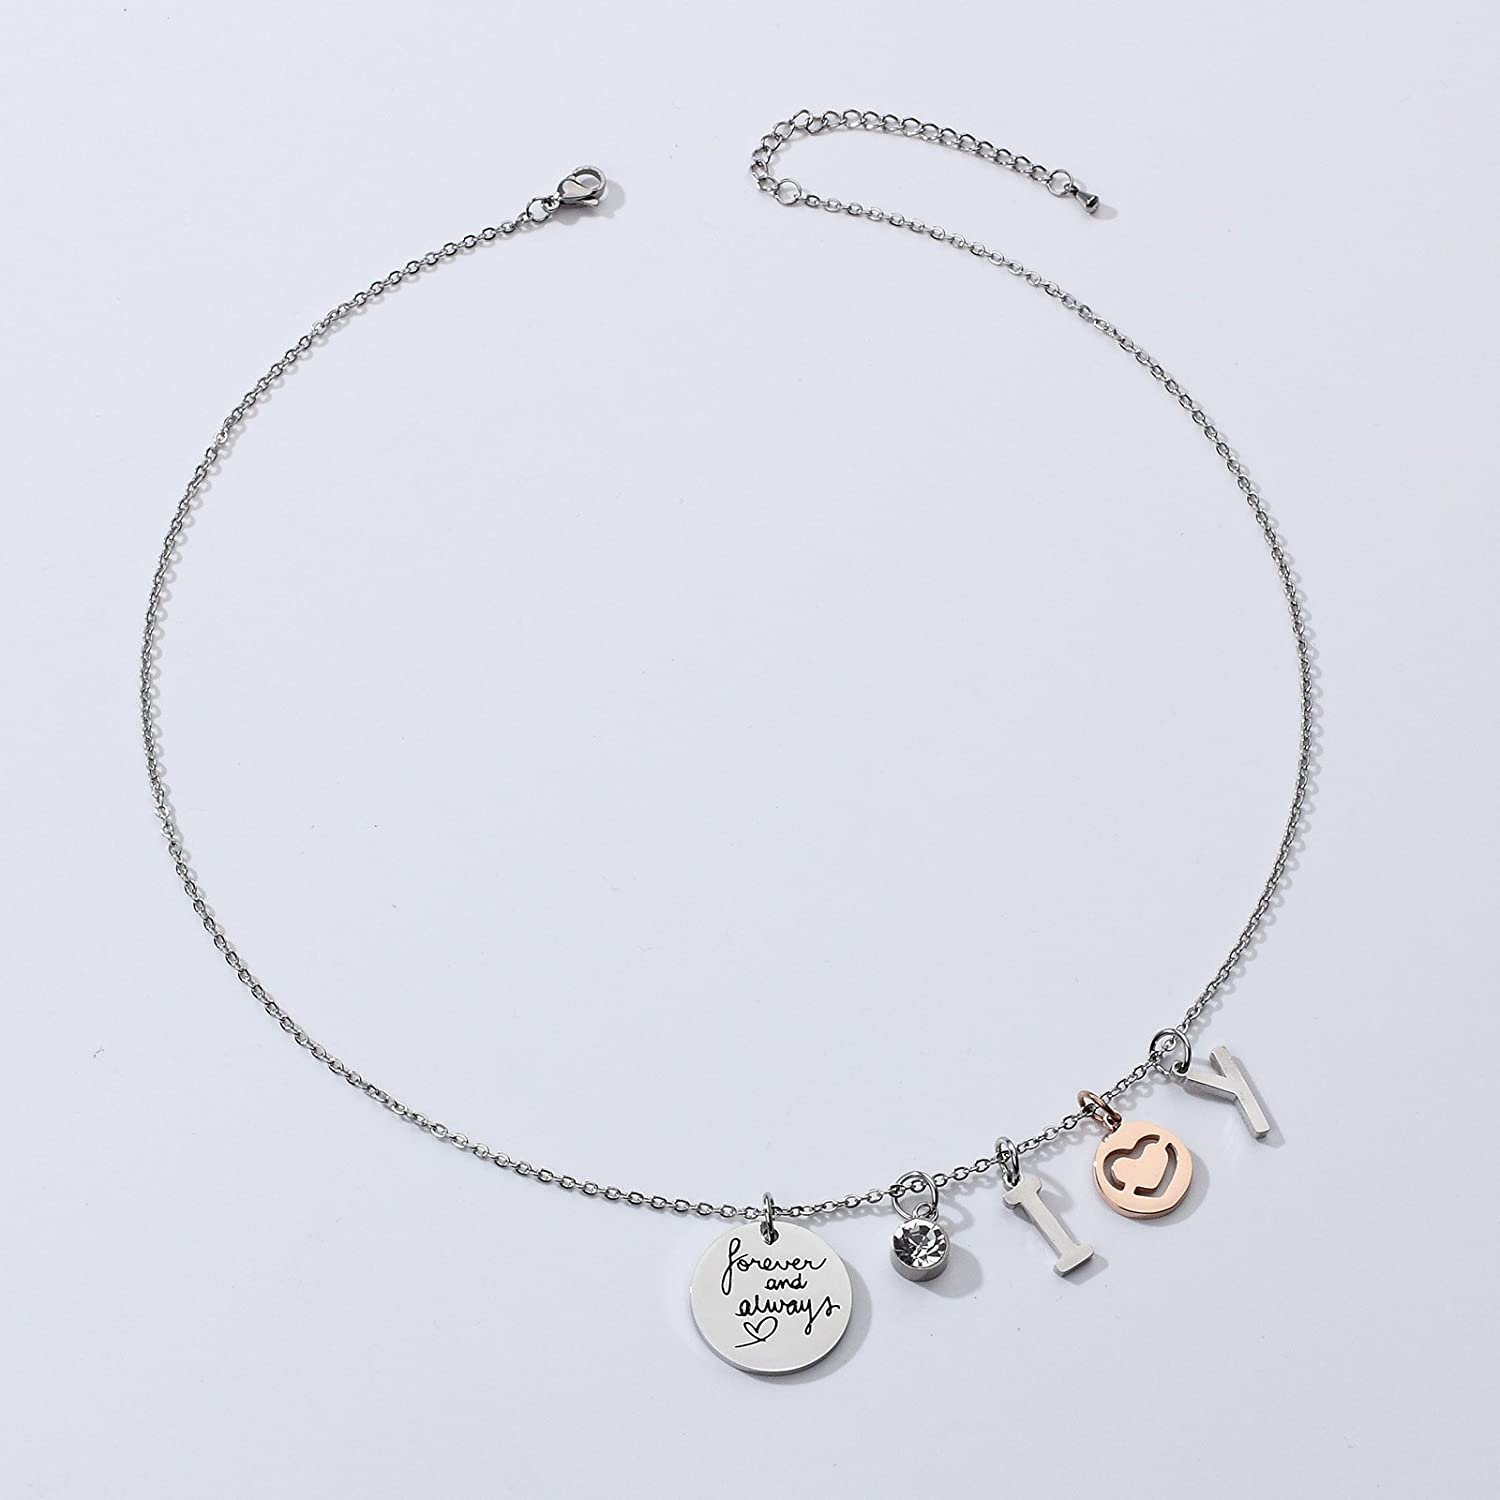 LIUANAN I Love You Forever Always Necklace for Women Teen Girls